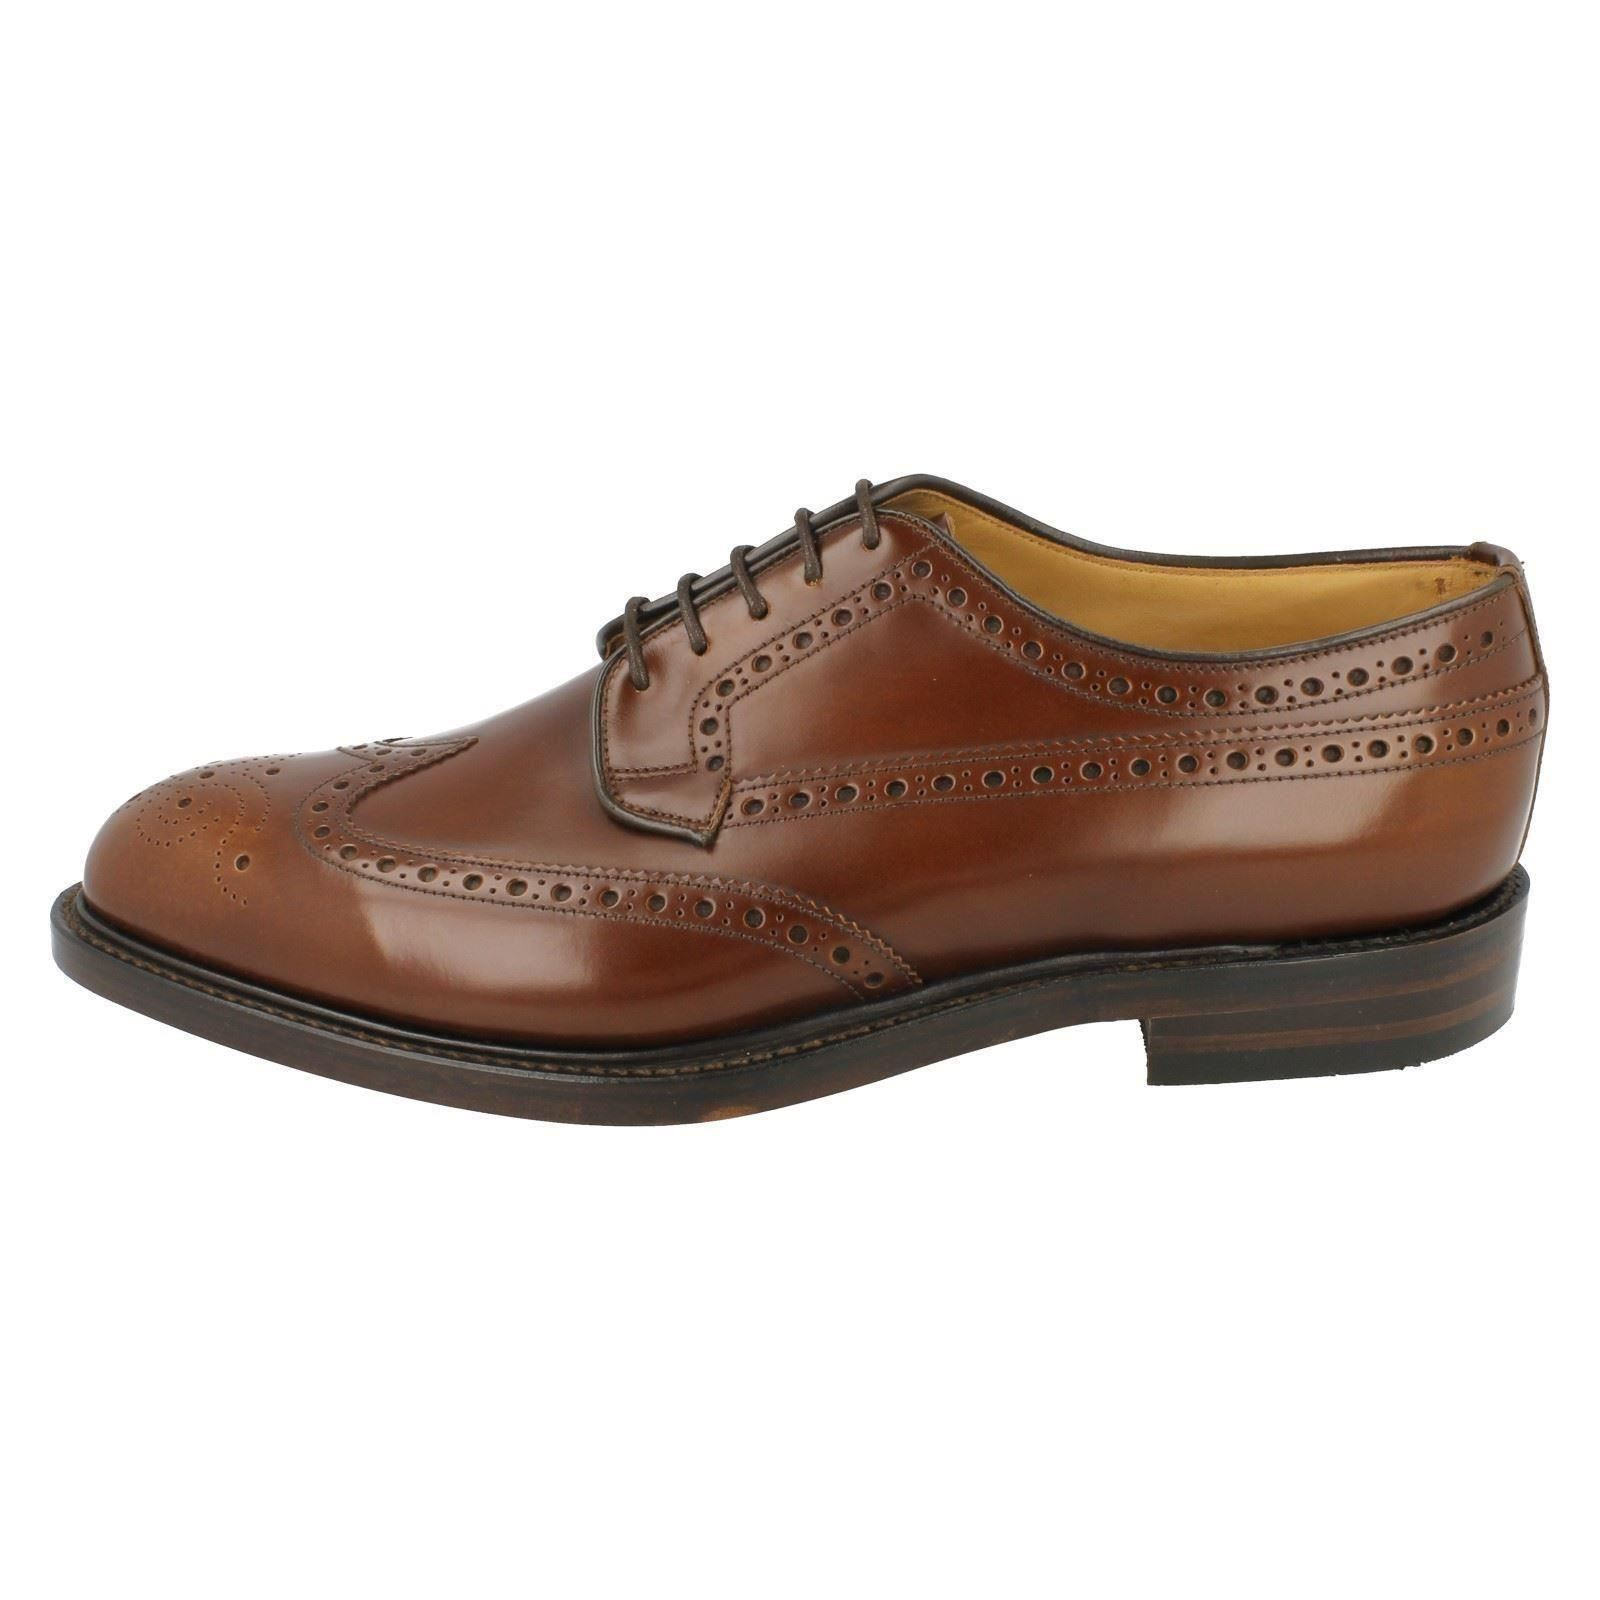 Uomo Loake Formal Formal Formal Brogue Schuhes The Style - Braemar 2c1772